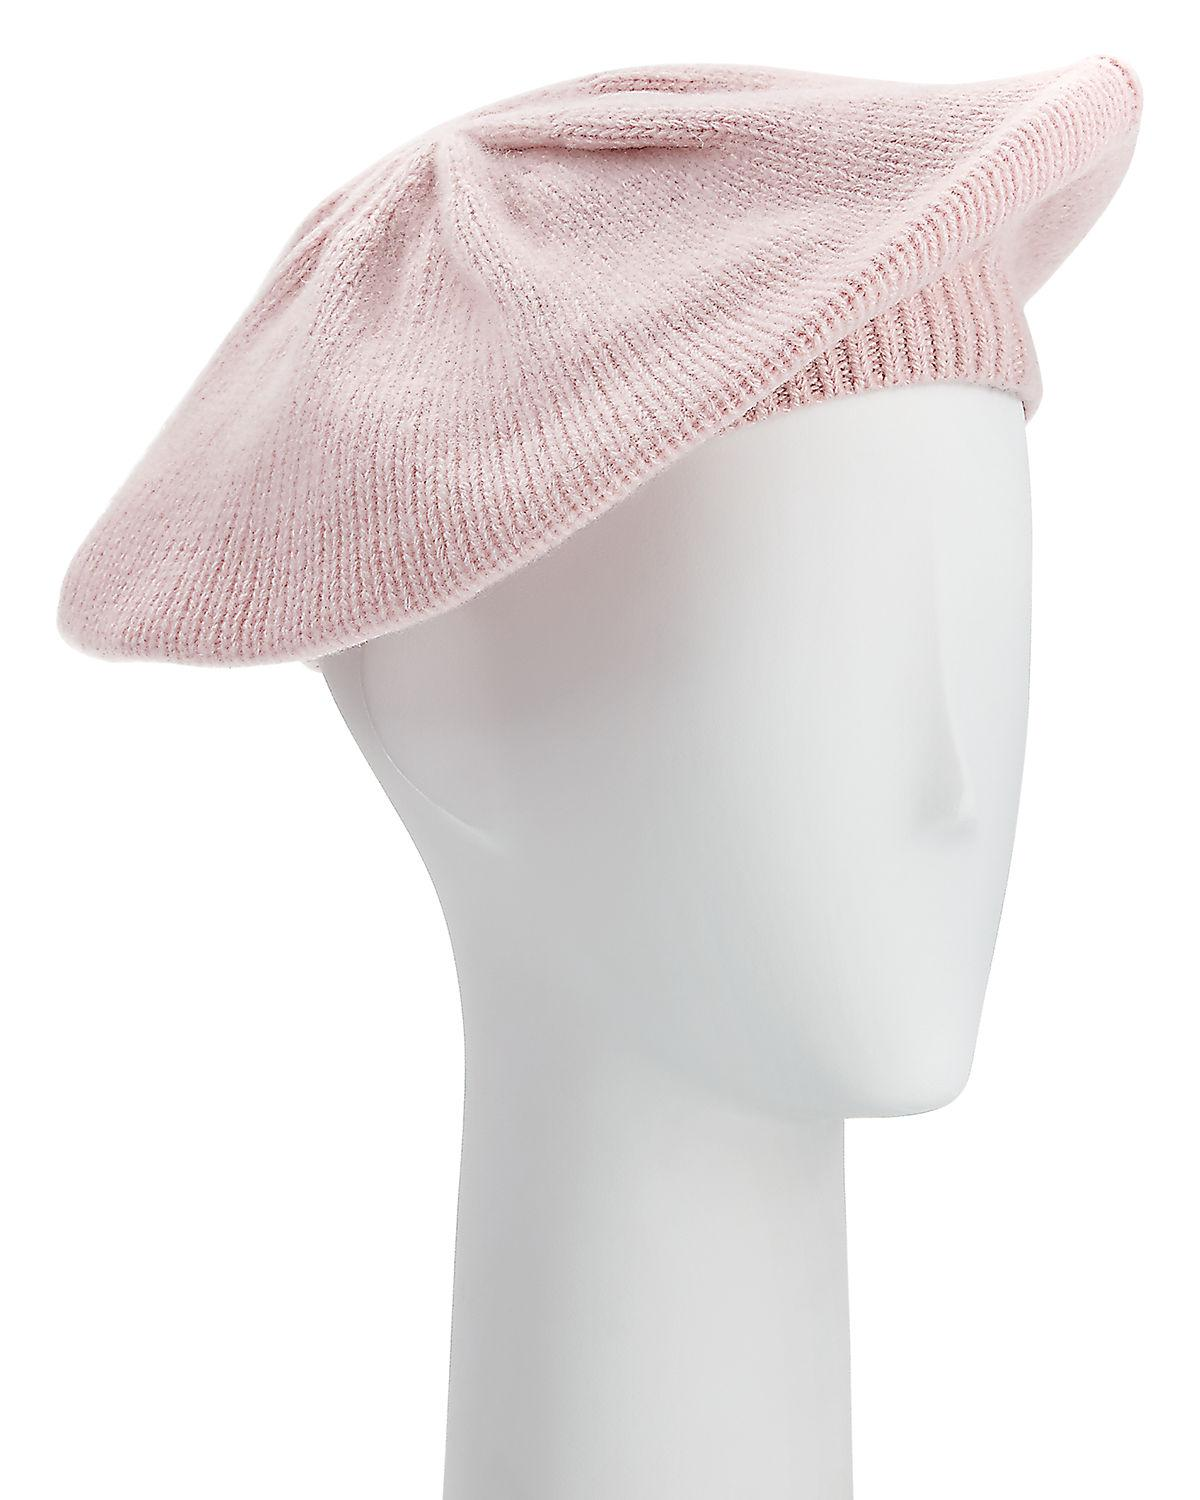 4165ff87587a7 Lyst - Portolano Knit Cashmere Beret in Pink